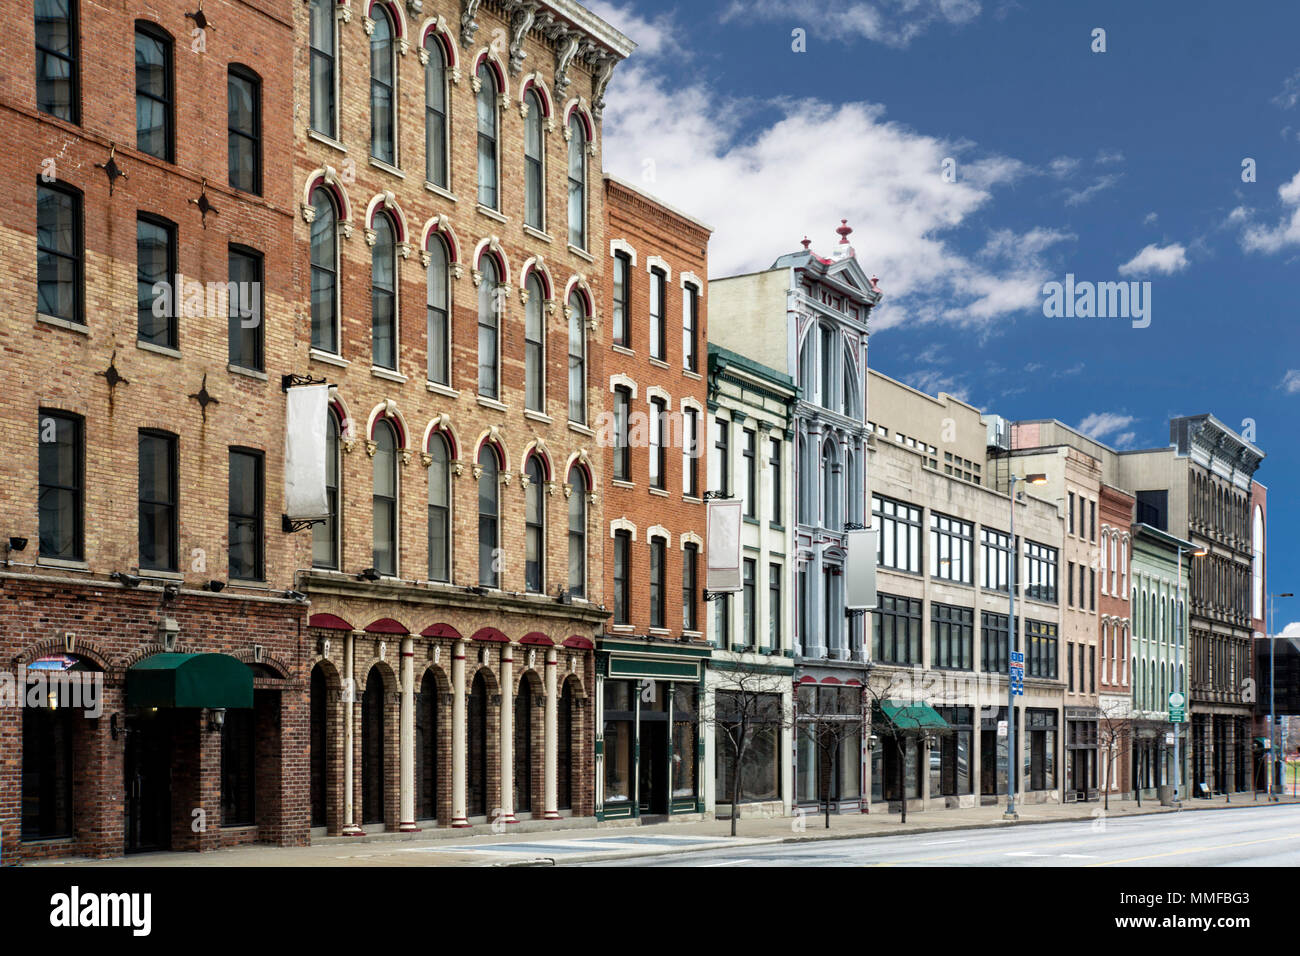 A photo of a typical small town main street in the United States of America. Features old brick buildings with specialty shops and restaurants. Stock Photo